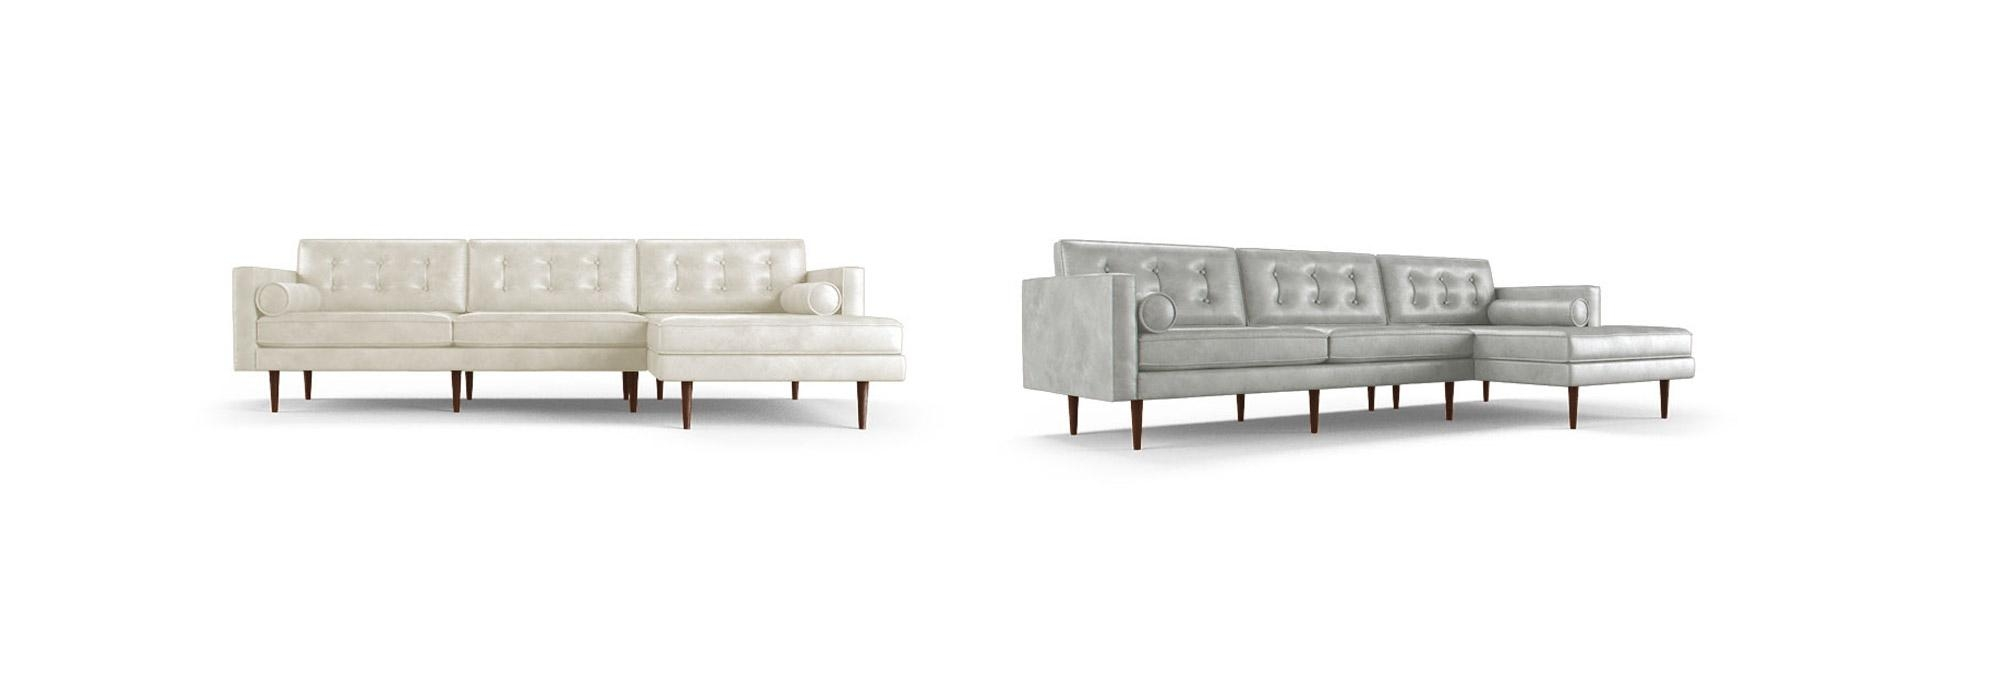 Braxton Leather Sectional | Joybird With Regard To Braxton Sectional Sofa (View 10 of 15)